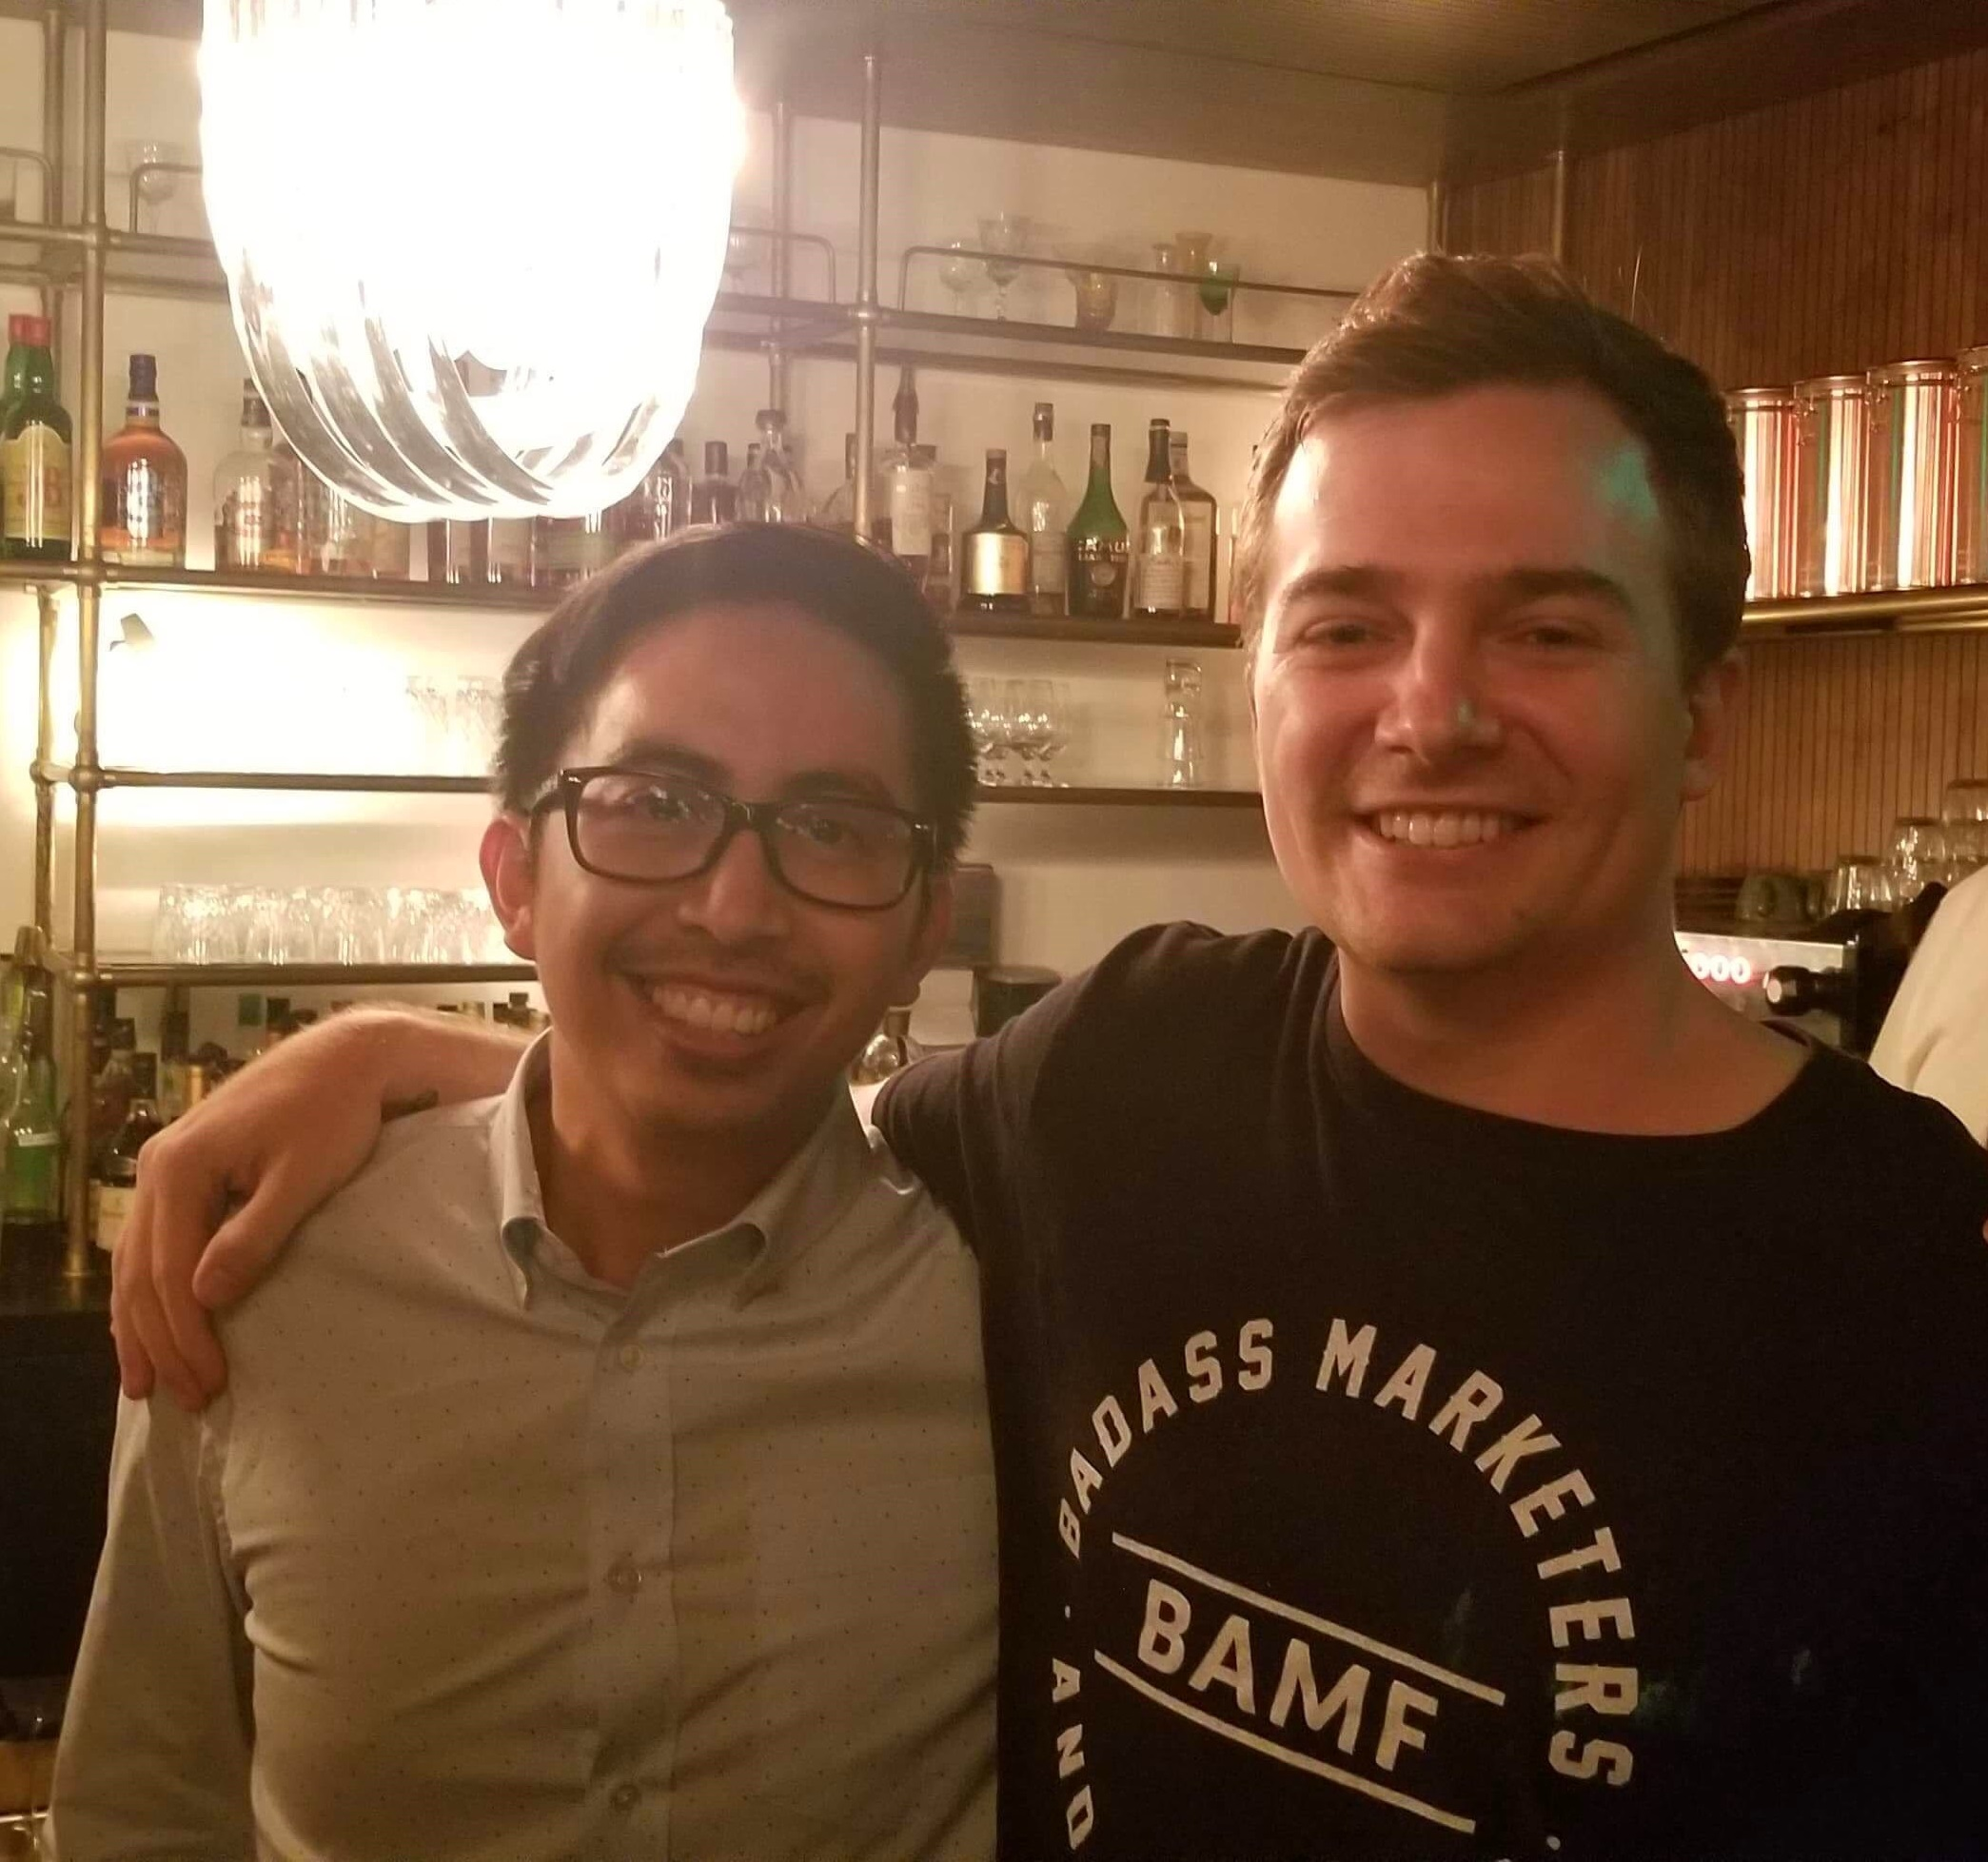 ME WITH THE LEGENDARY JOSH, BAMF'S FOUNDER. I CONSIDER THIS GUY ONE OF THE BEST GROWTH MARKETERS IN THE WORLD.